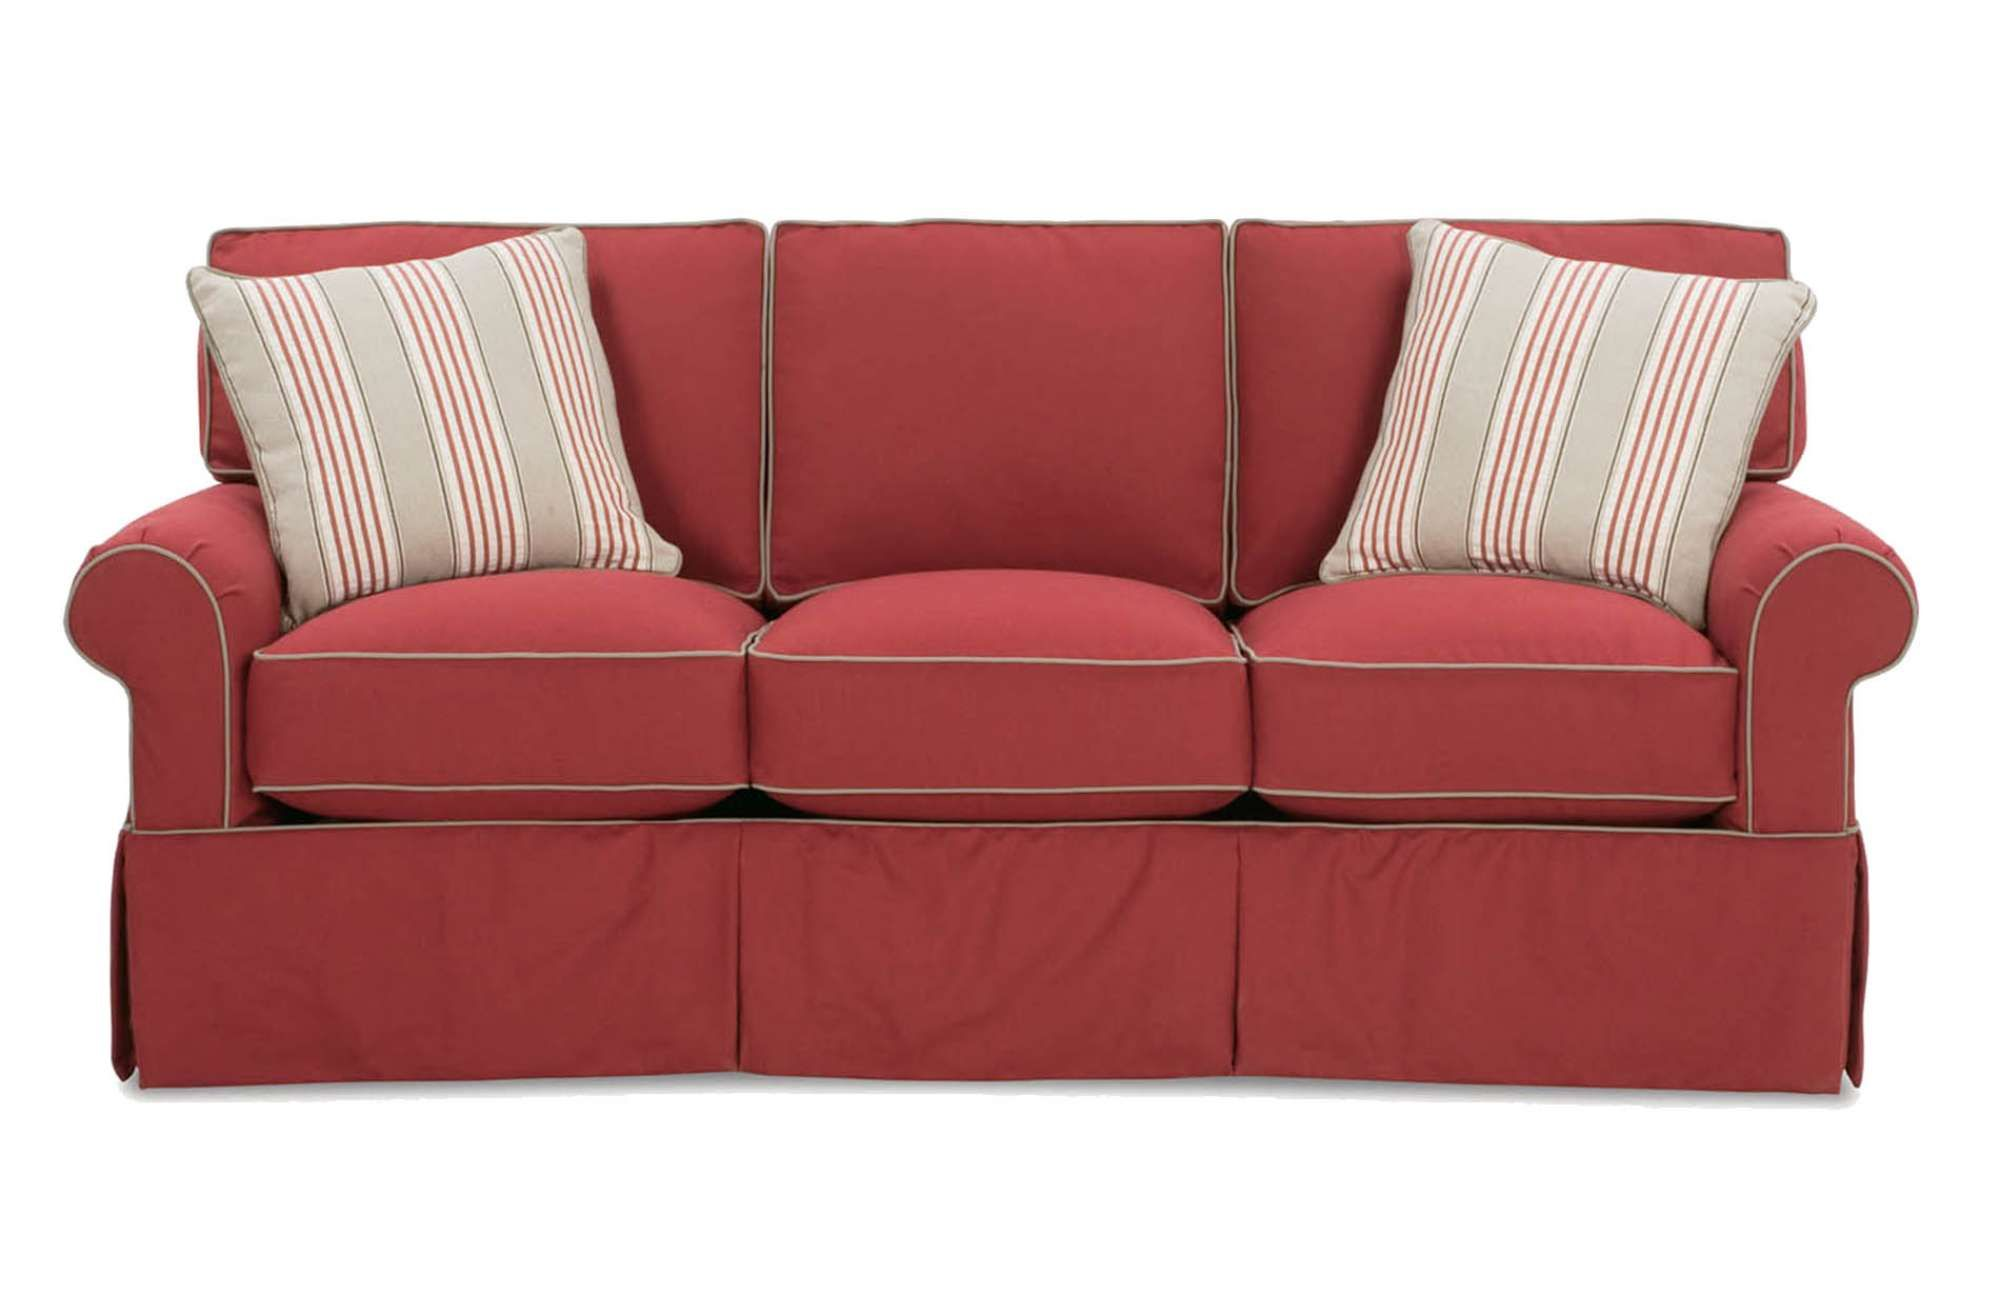 Rowe Nantucket Sofa WooHoo score of the day I just bought this